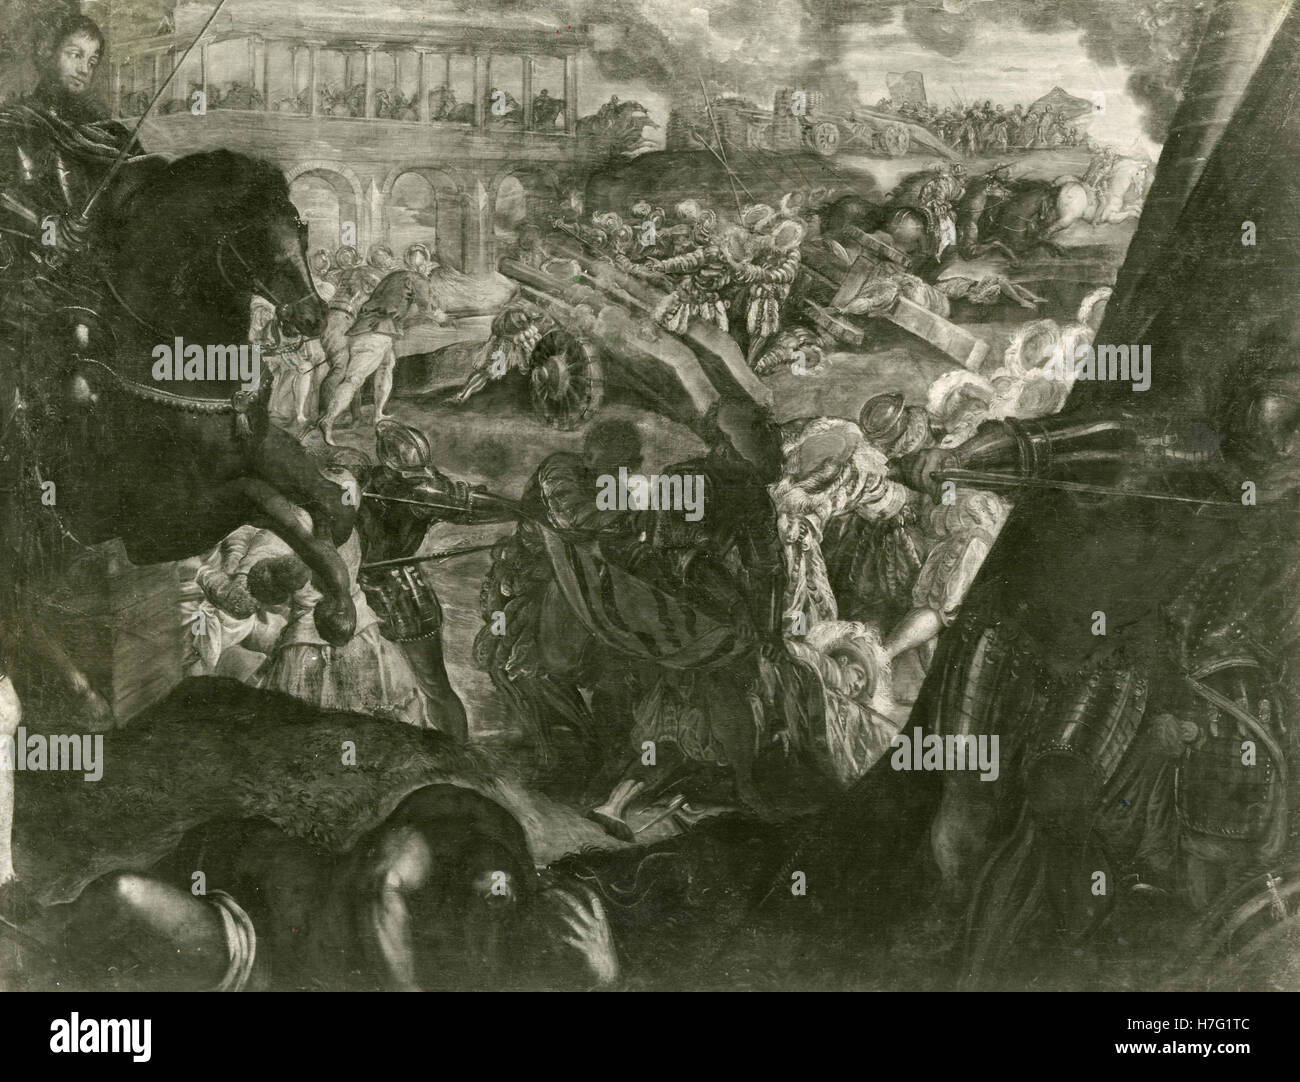 Frederick II conquered Parma in 1521, painting by Tintoretto - Stock Image